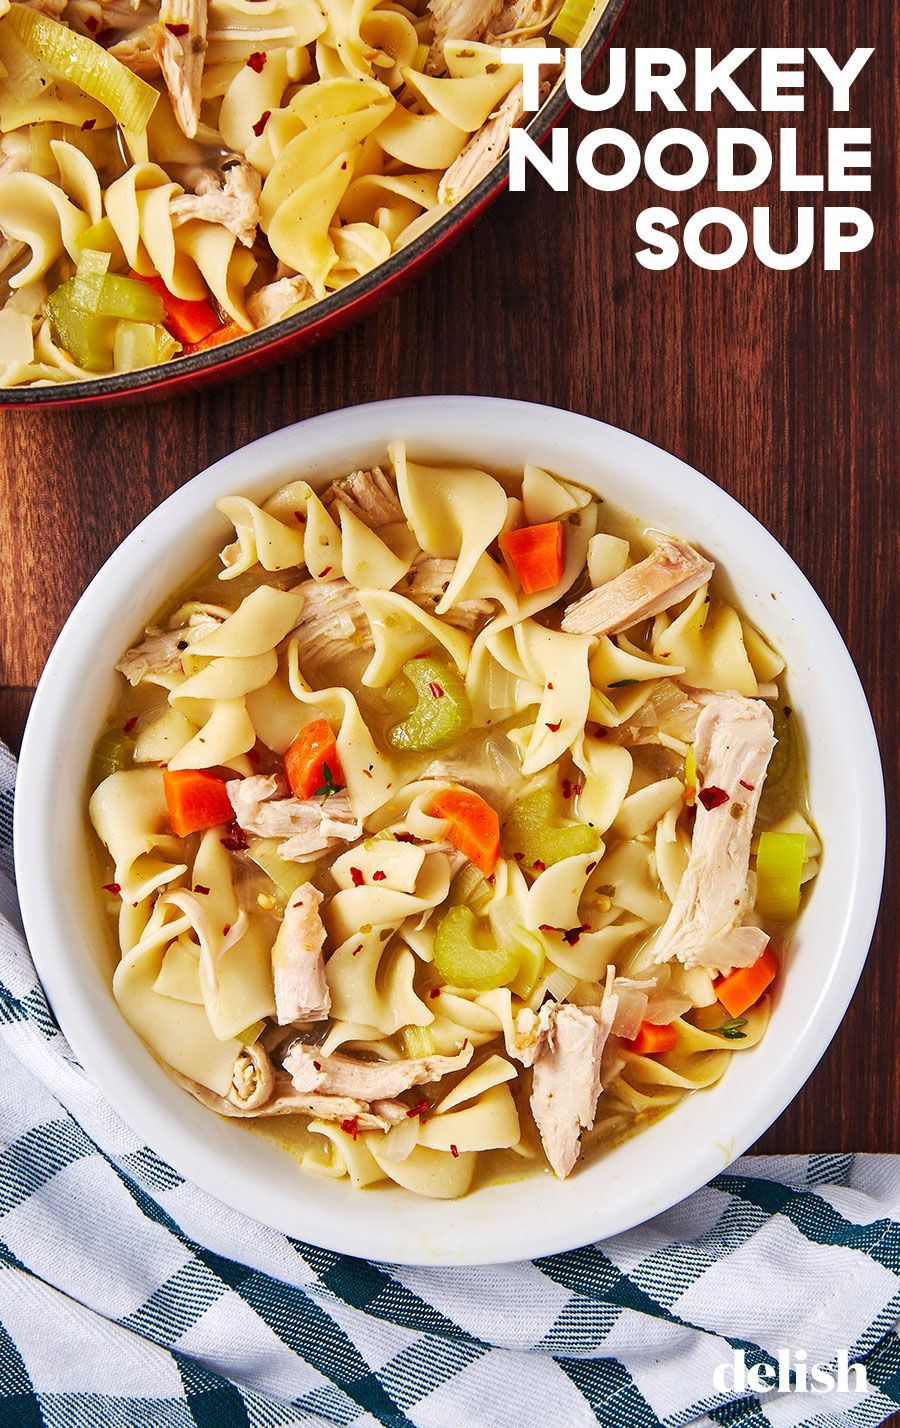 Photo of Turkey Noodle Soup